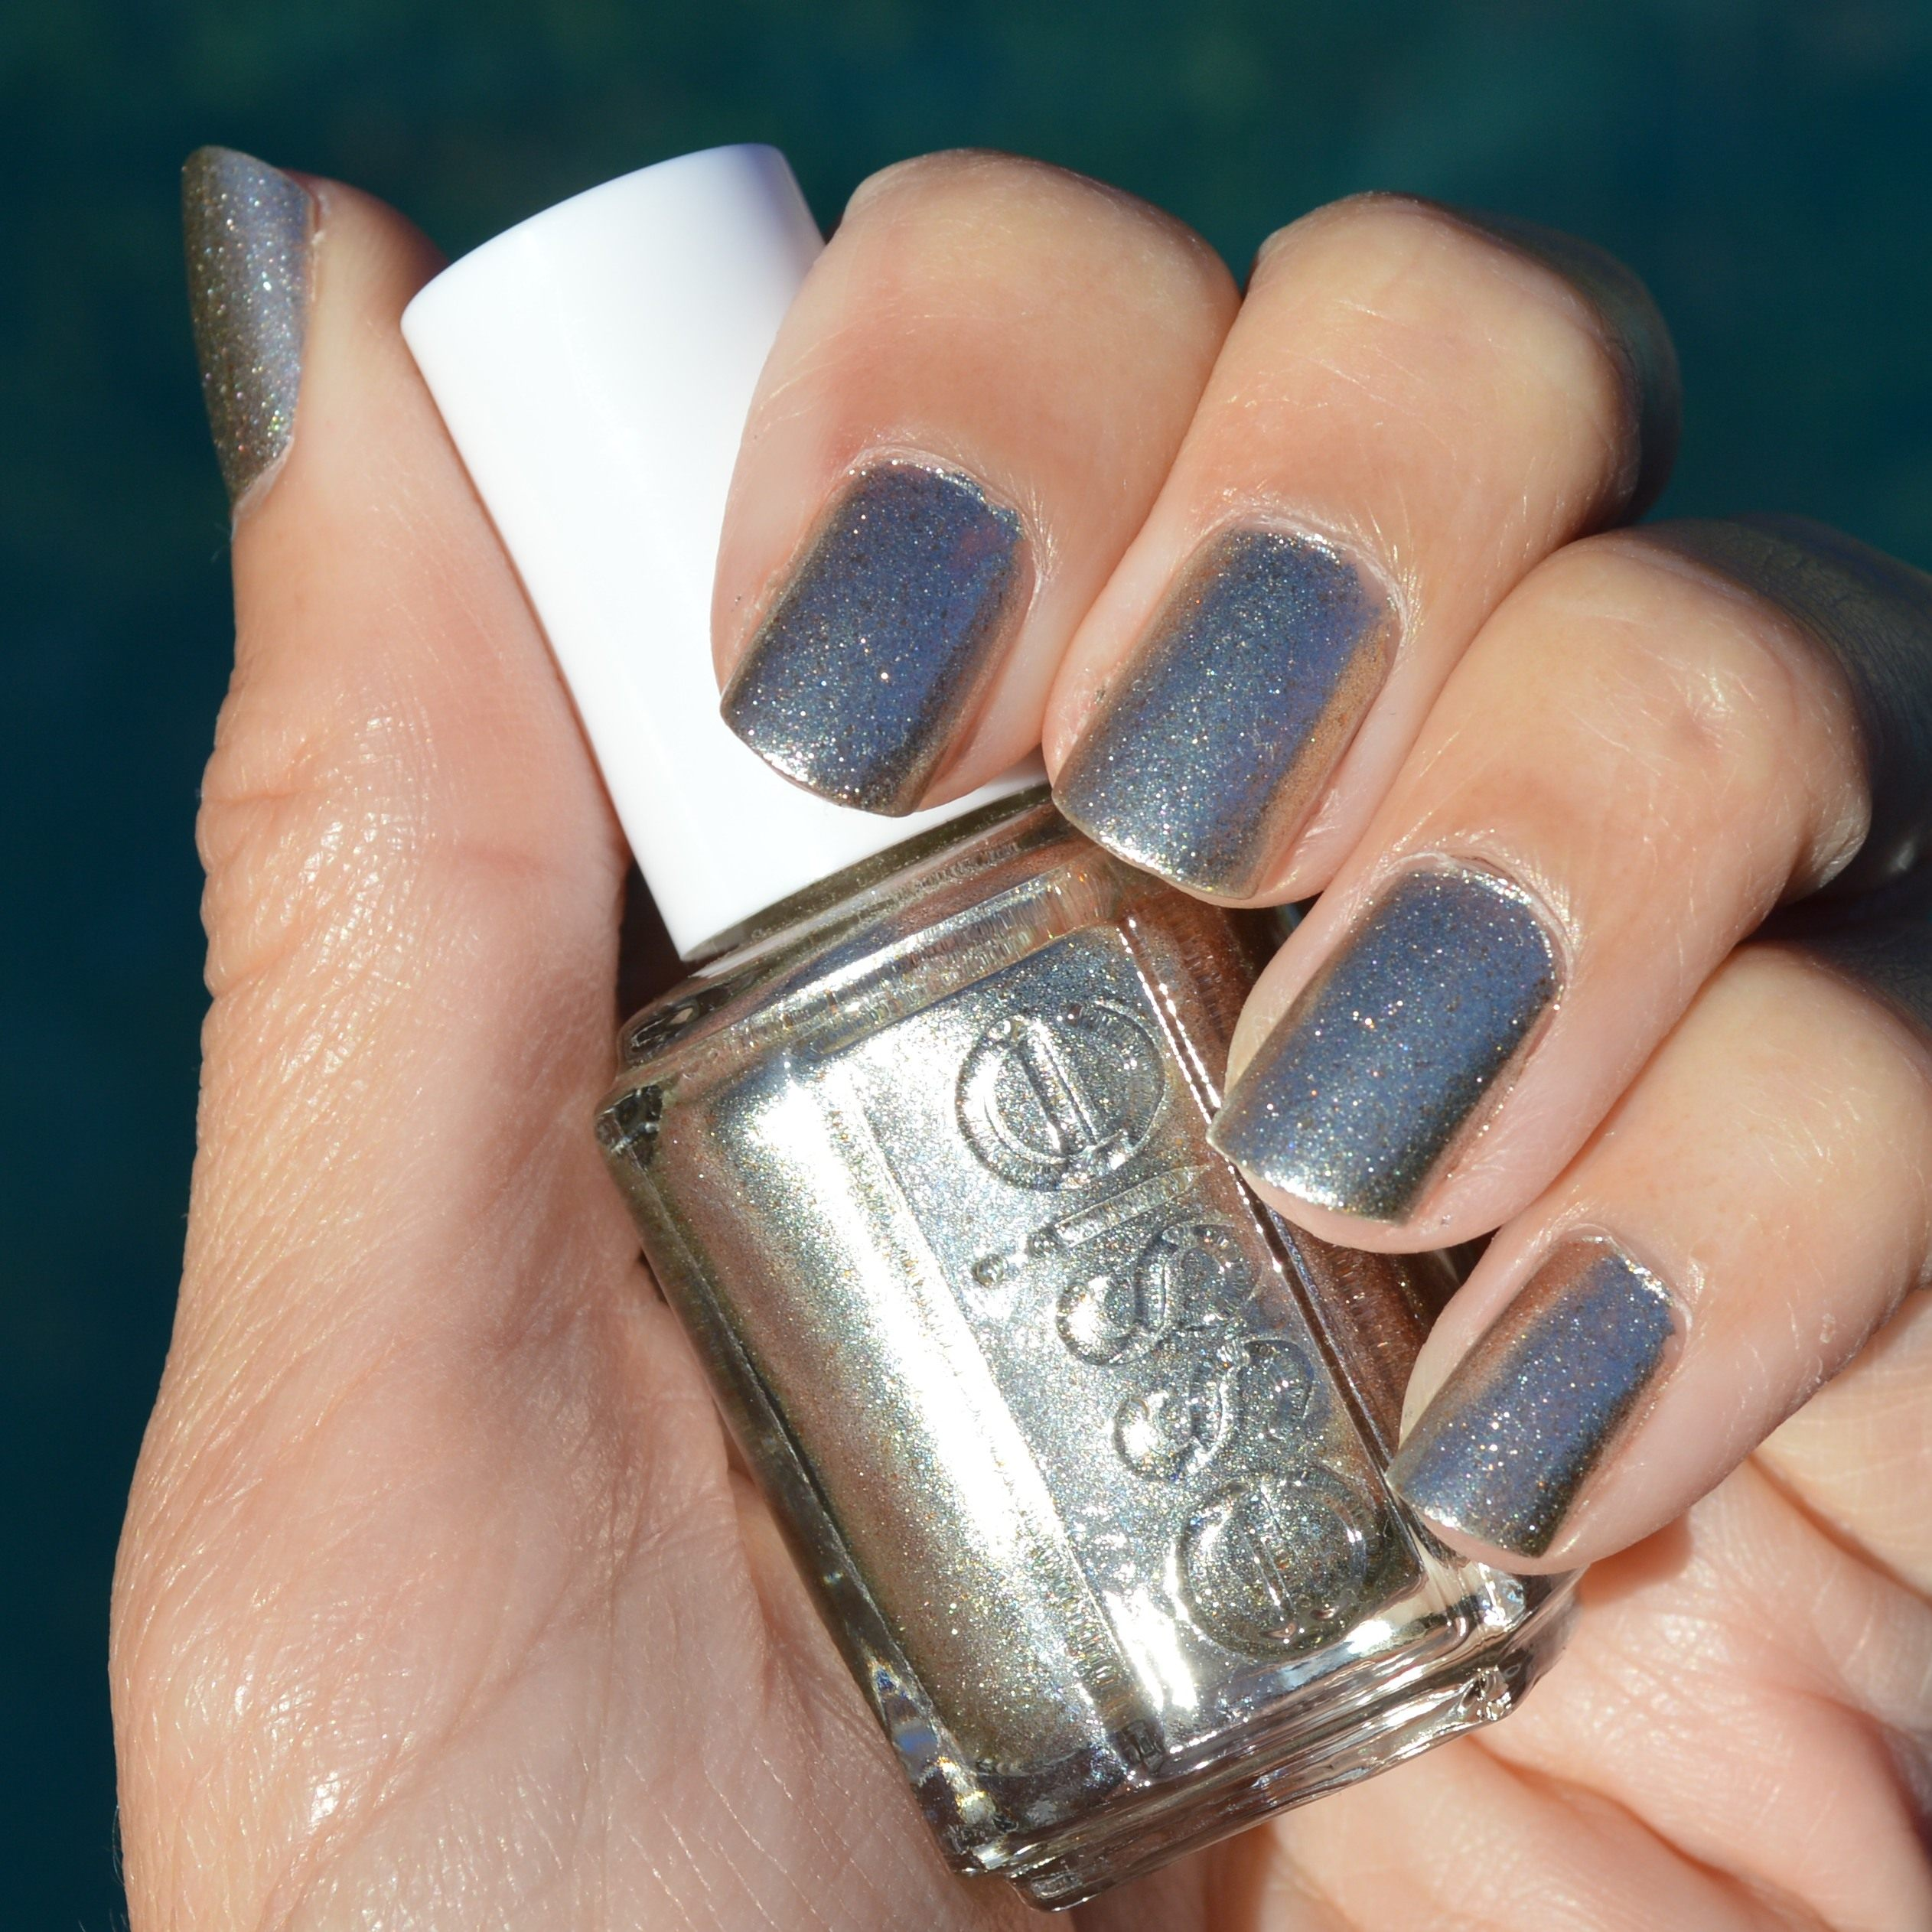 DSC 0117 0122 Pictured Essie Jiggle Hi Low Nail Polish From The Winter 2015